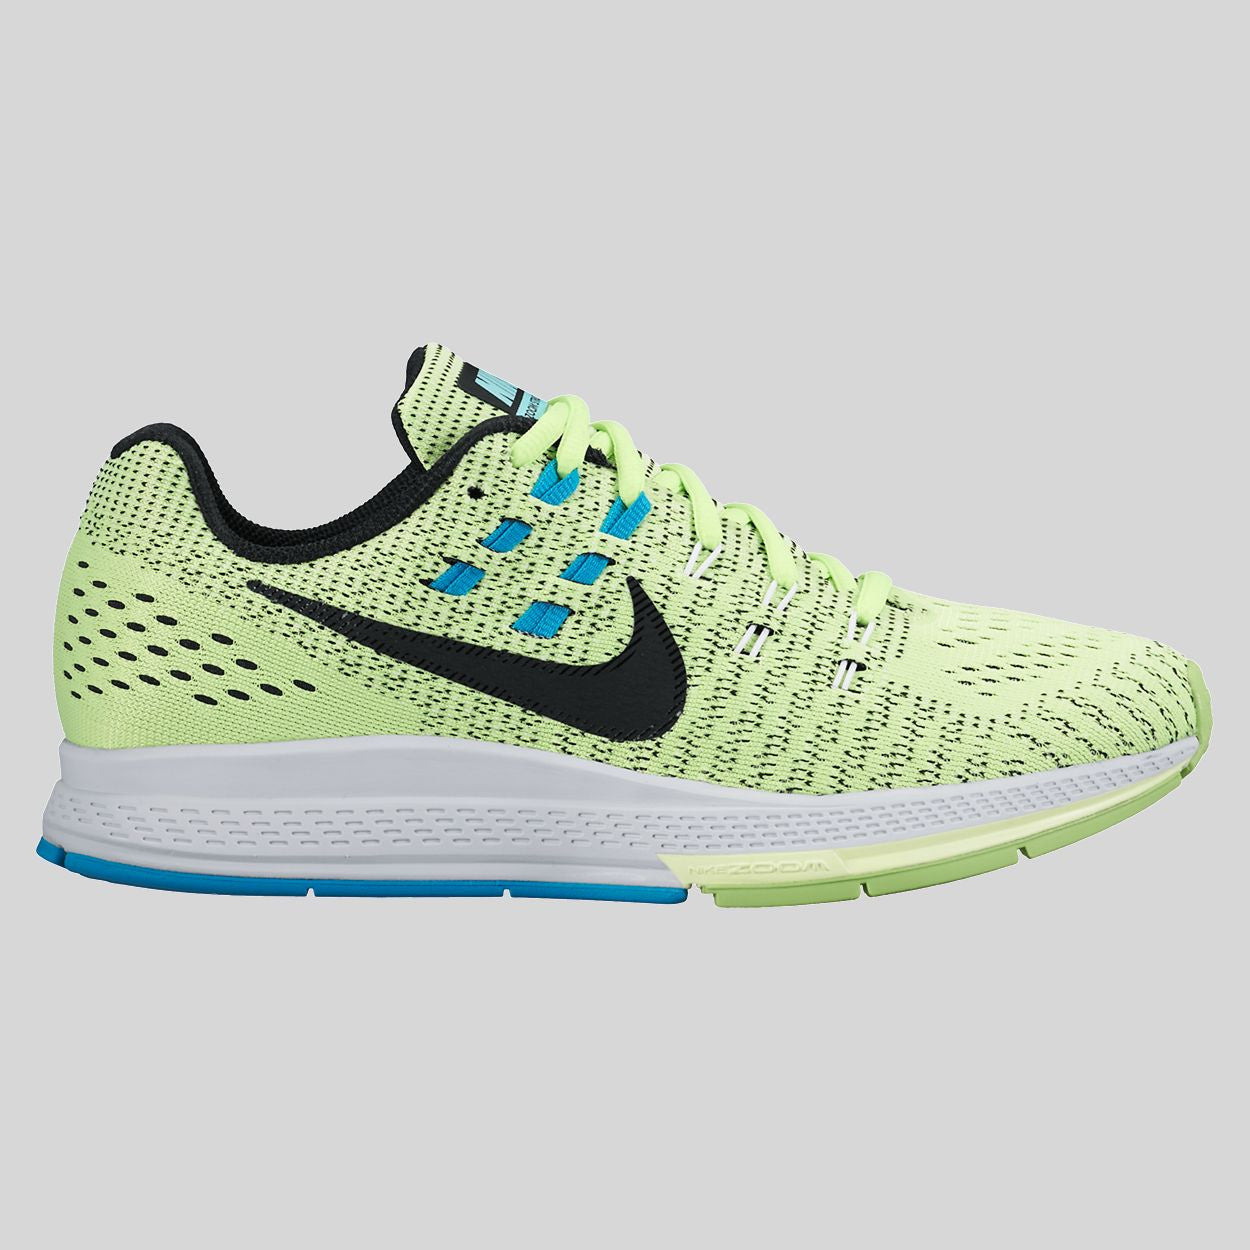 nike zoom structure 19 pink green - nike zoom structure 19 green pink